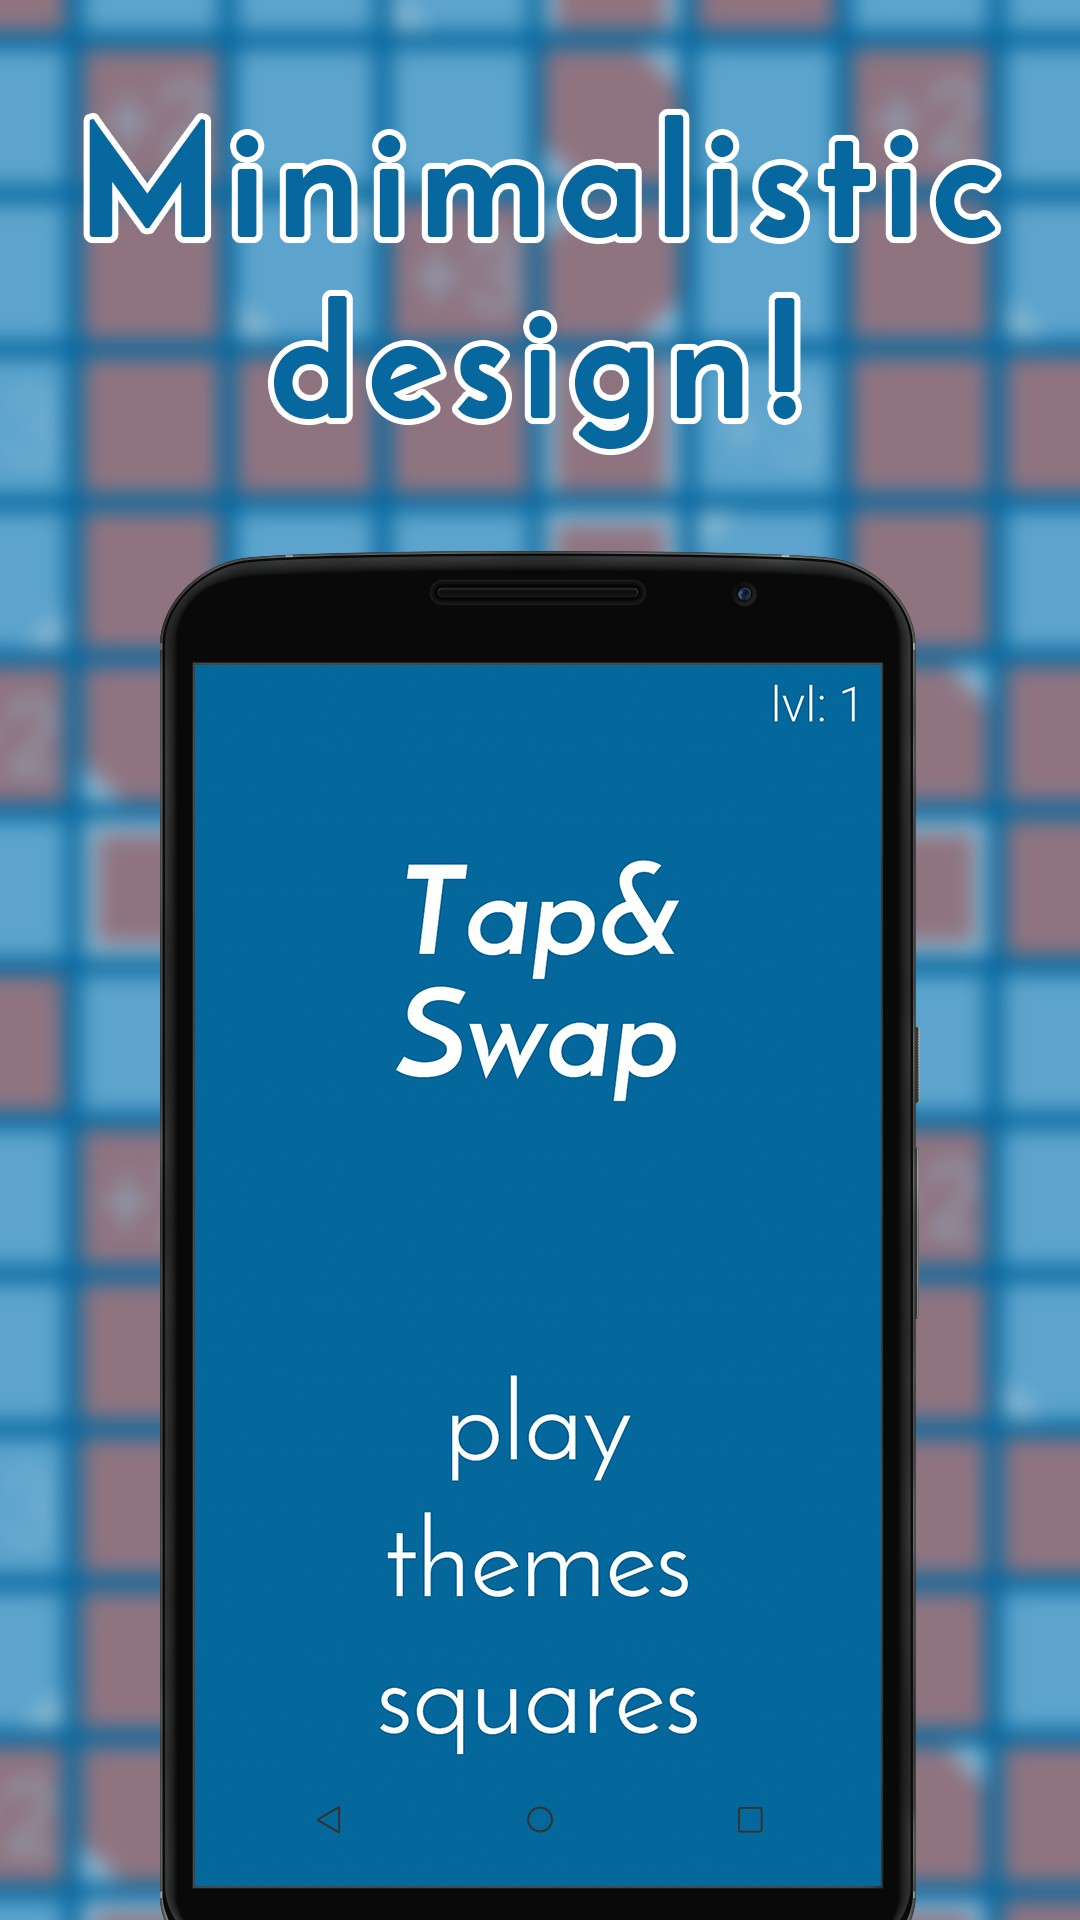 Tap and Swap